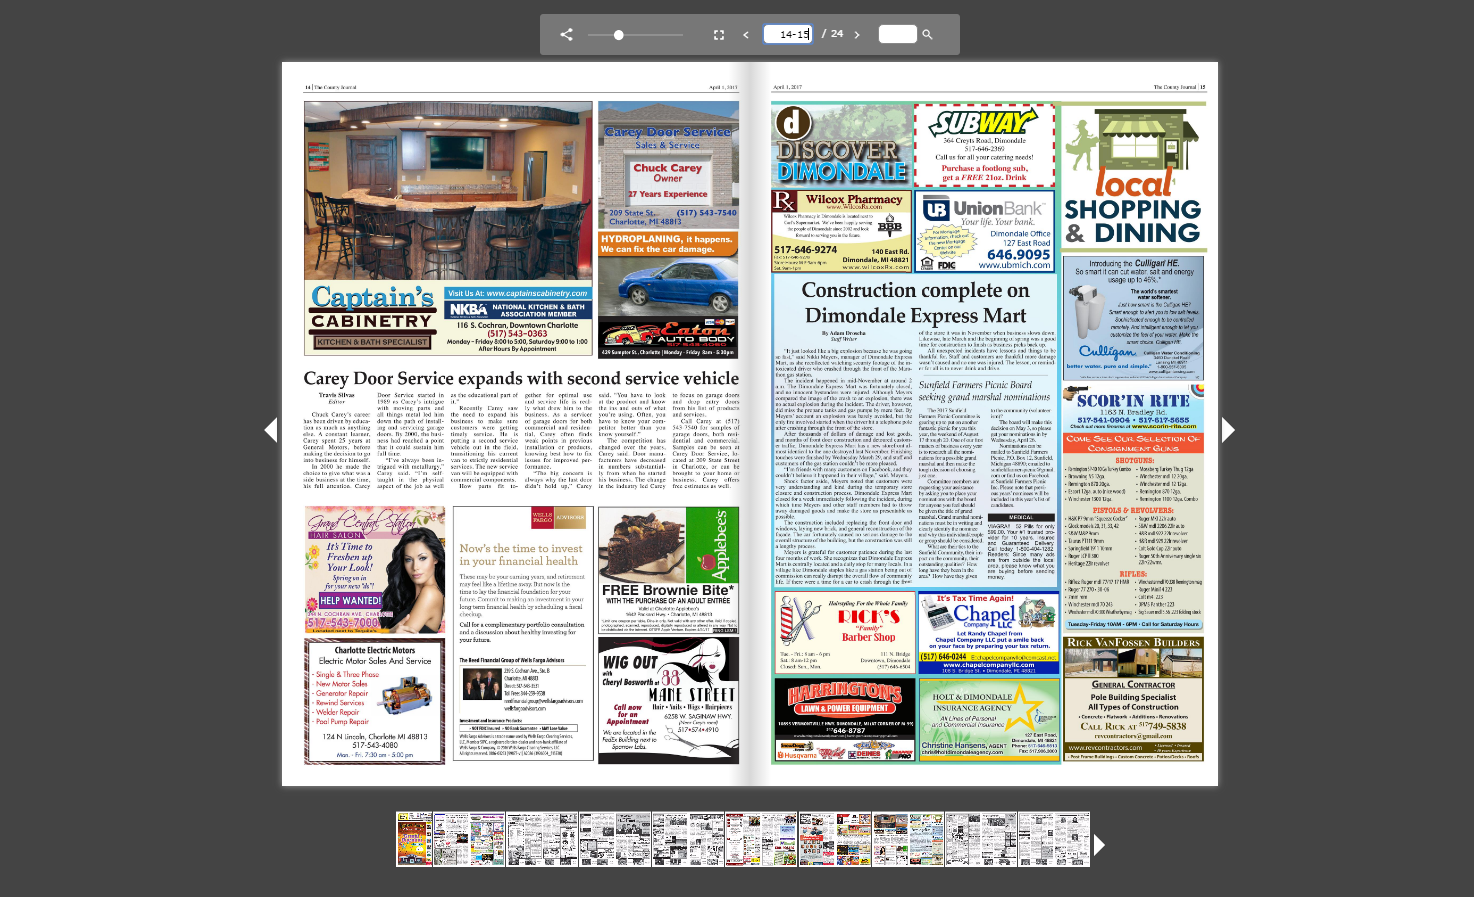 Michigan eaton county potterville - Read The County Journal Online